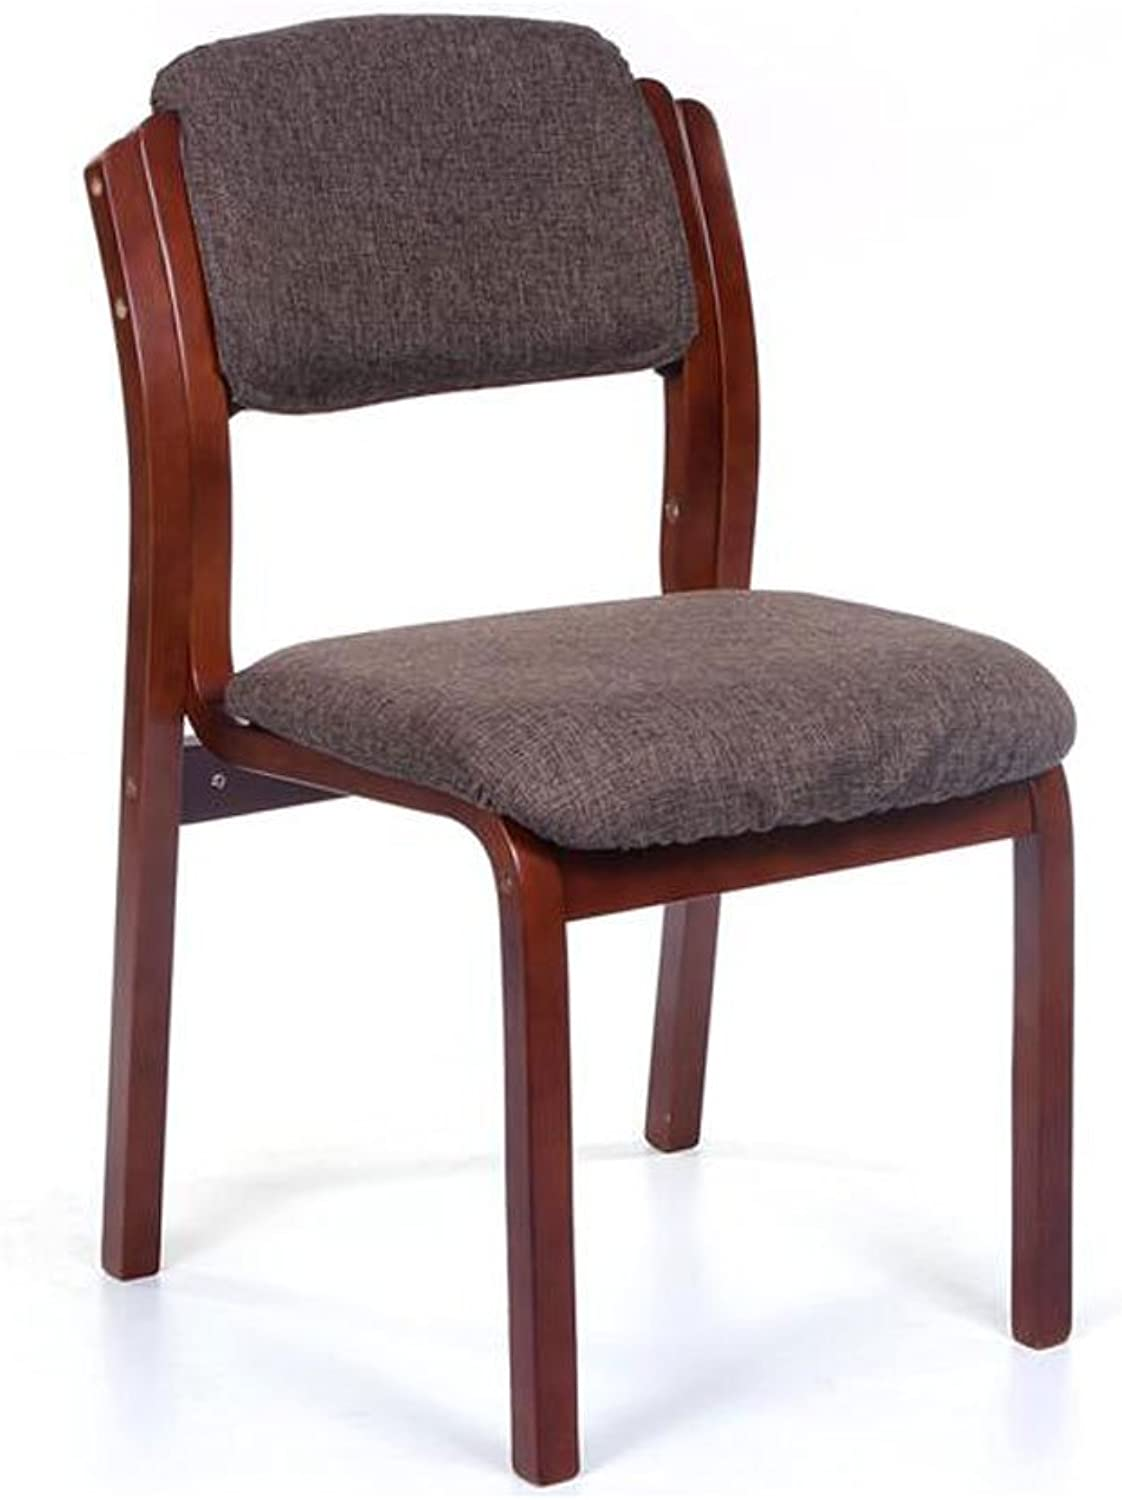 KXBYMX Simple Wooden Chair, Nordic Dining Chair Sofa Chair Back Office Chair. Kitchen Lounge Furniture (color   B)